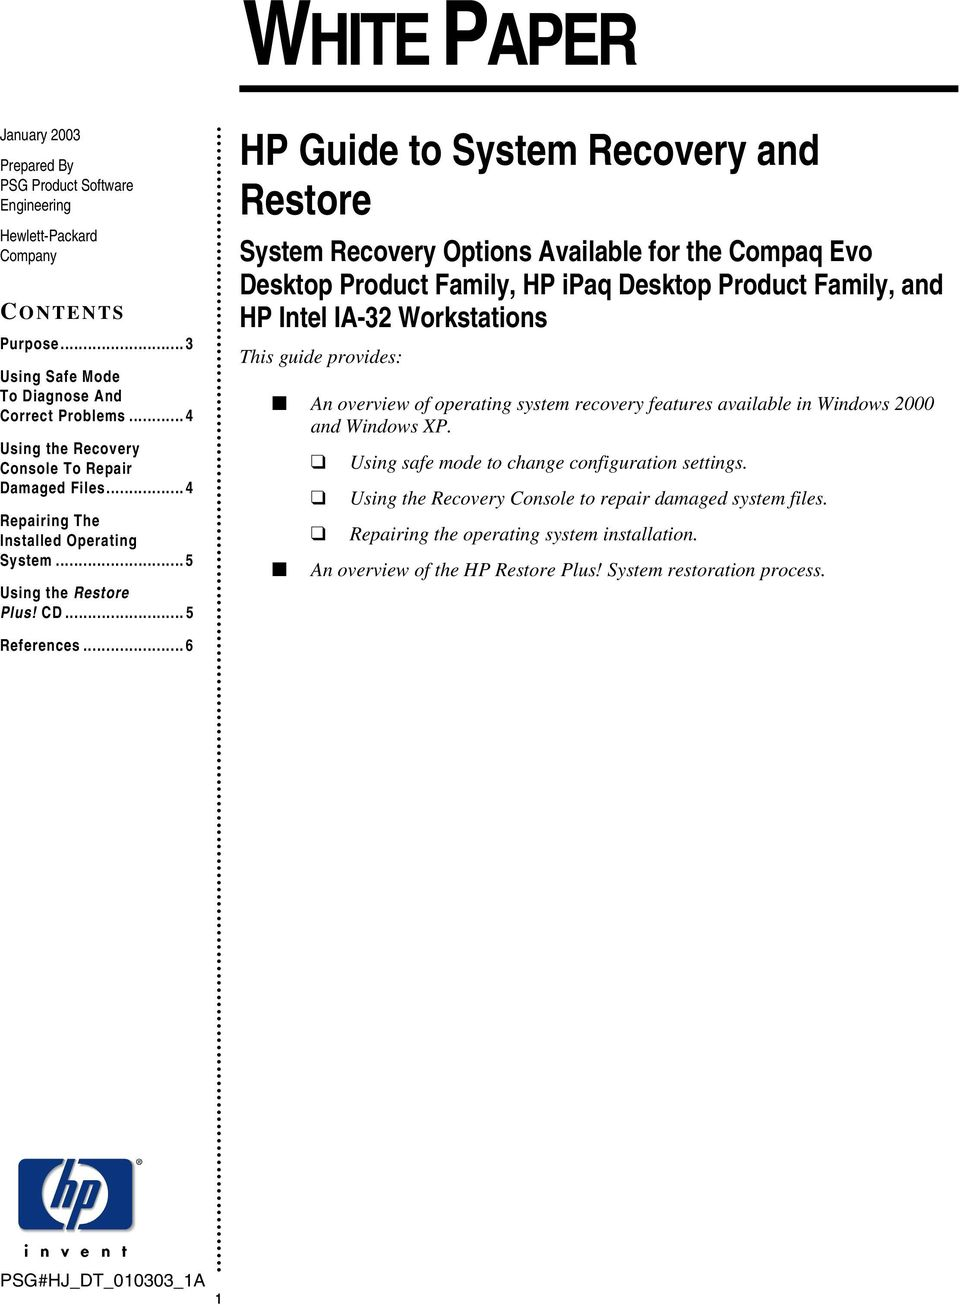 CD 5 HP Guide to System Recovery and Restore System Recovery Options Available for the Compaq Evo Desktop Product Family, HP ipaq Desktop Product Family, and HP Intel IA-32 Workstations This guide